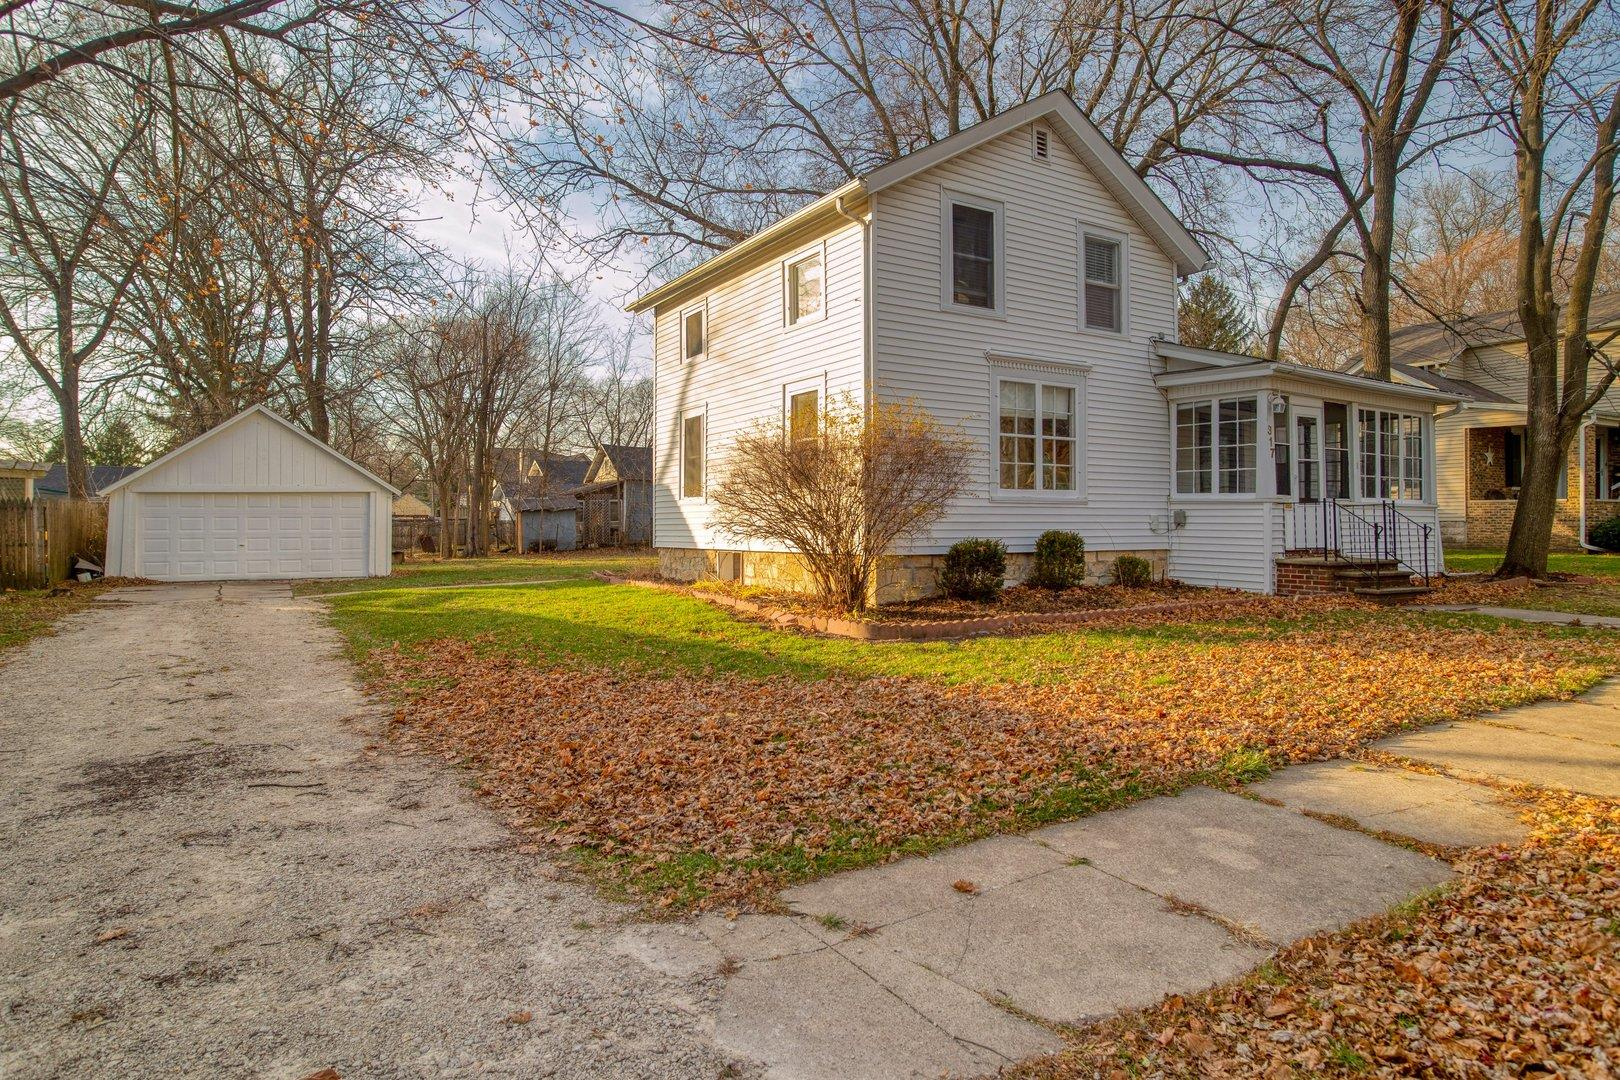 317 Washington Street, Sandwich, IL 60548 - #: 10937416